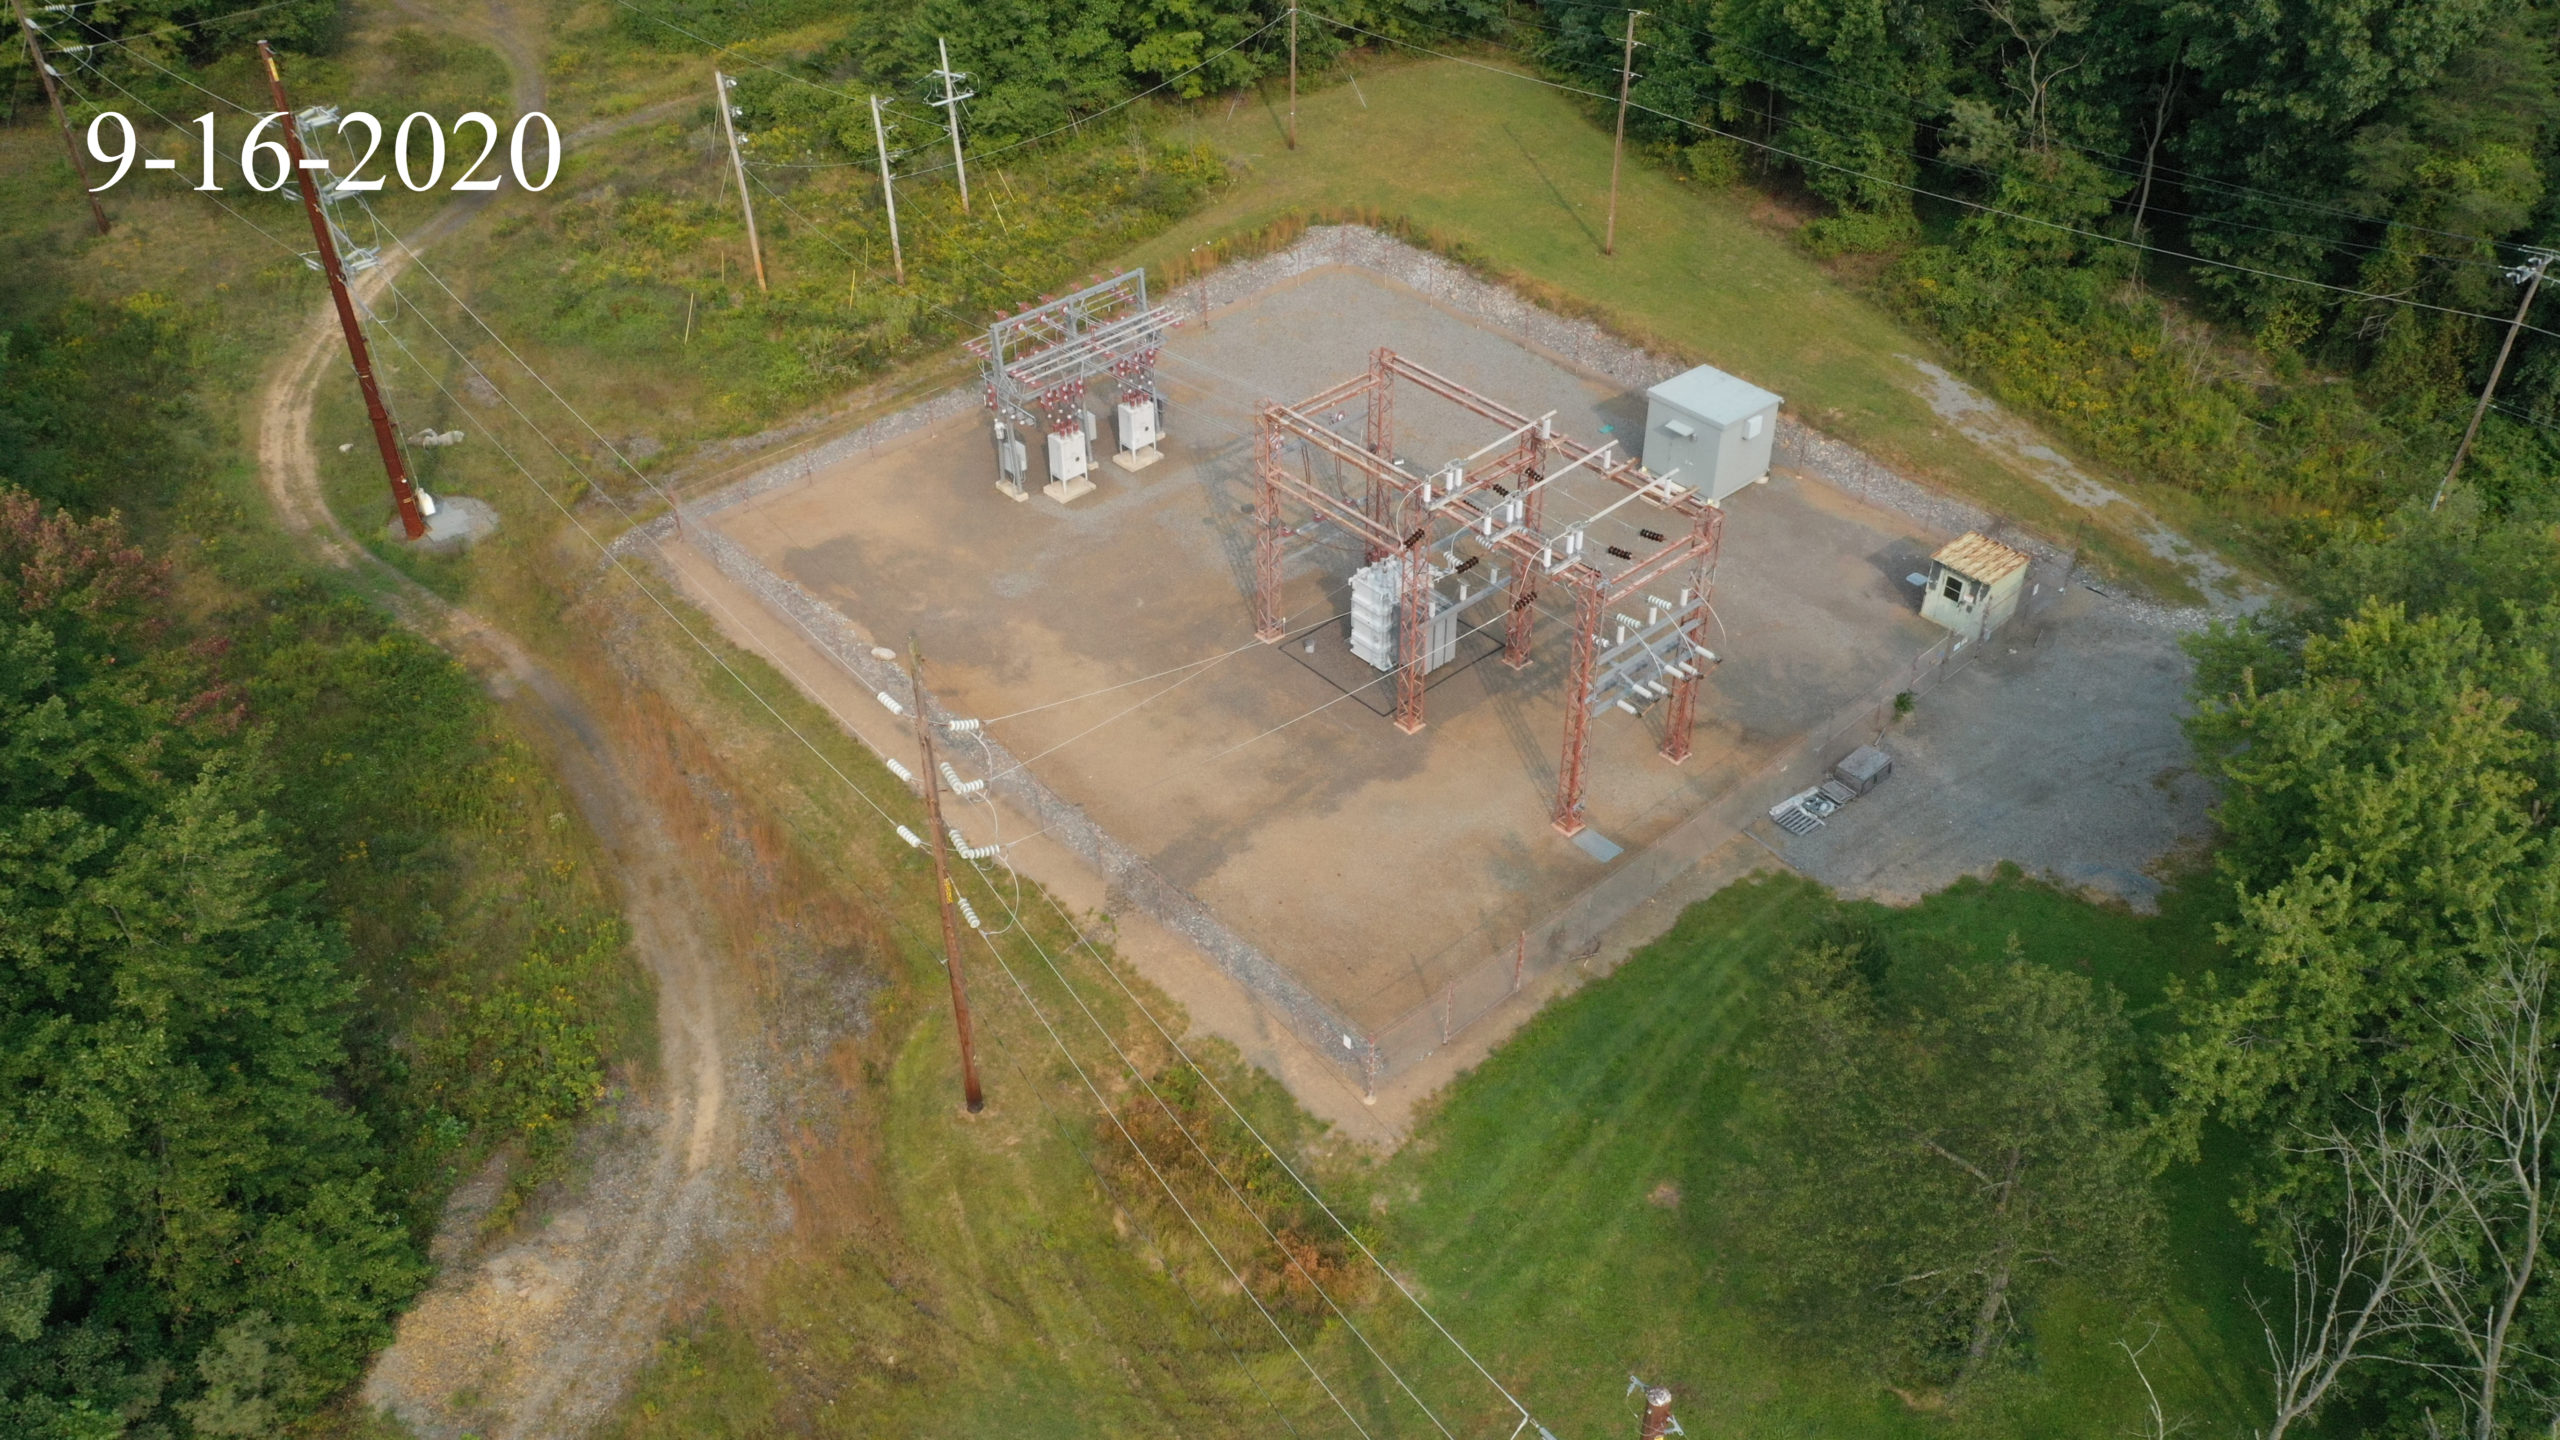 Lykens to Gratz Tap Transmission Line Pre Construction Video and Photography